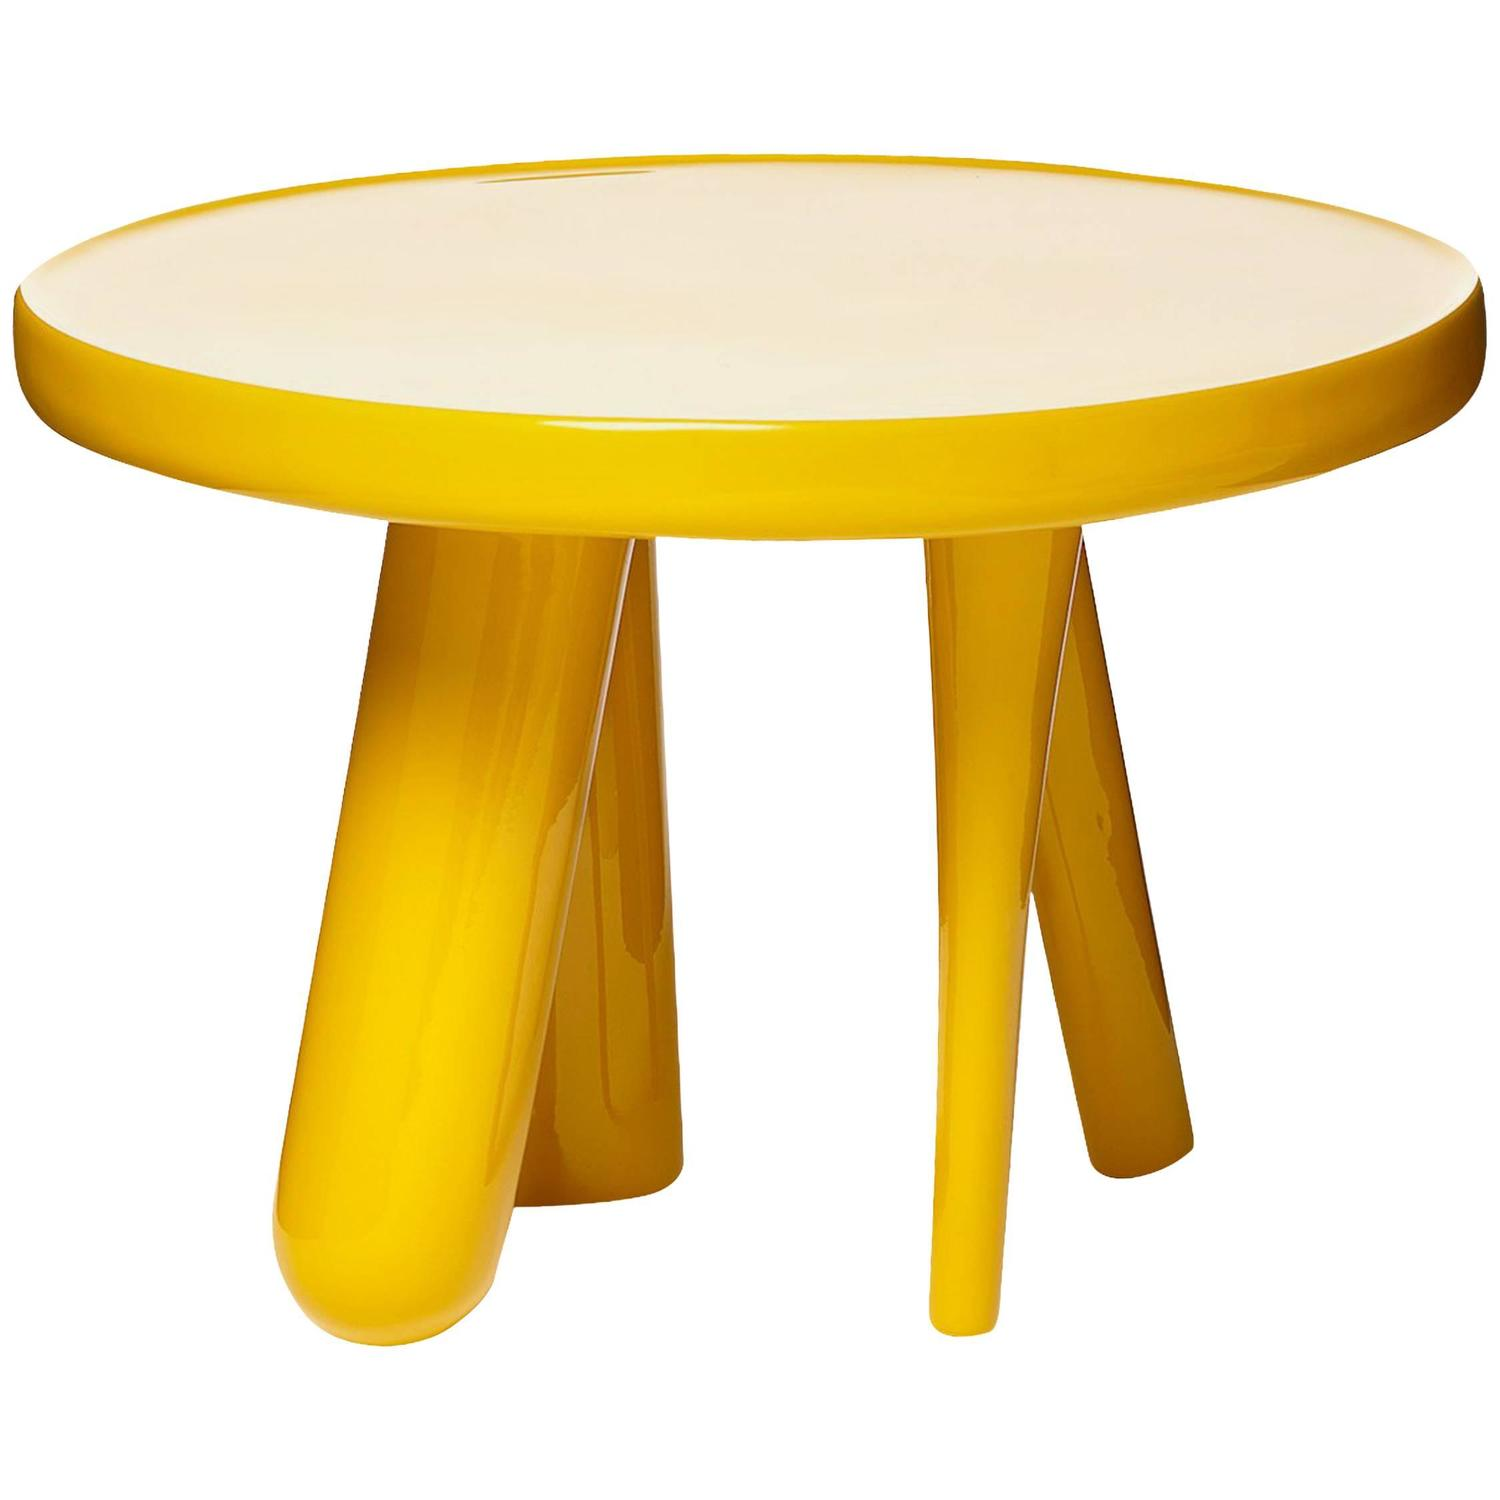 Moooi Elements 002 Table by Jaime Hayon in Yellow Light Grey or